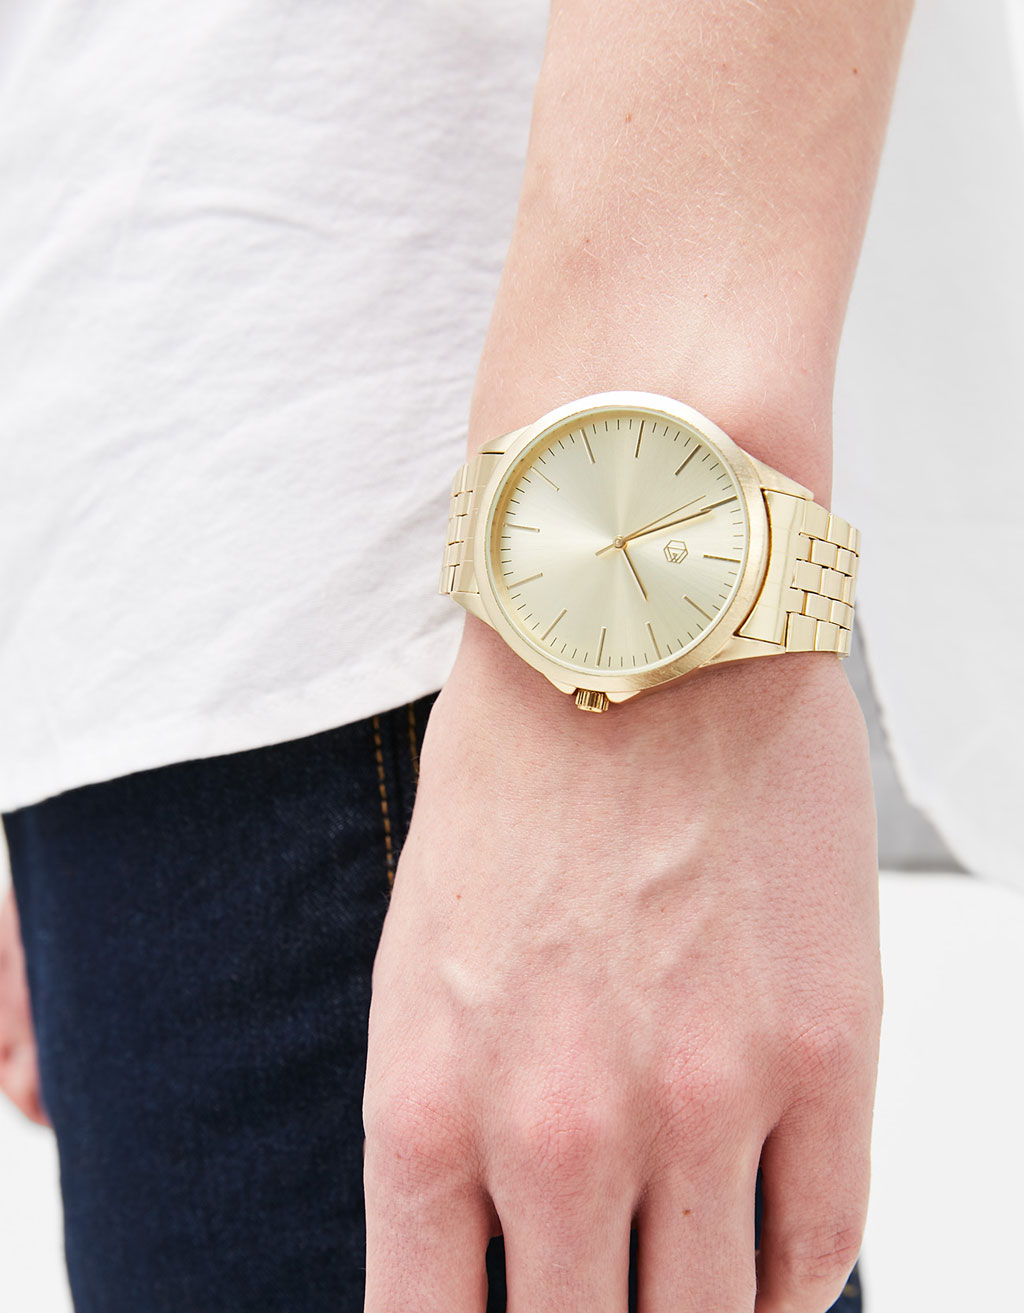 Golden-chained watch